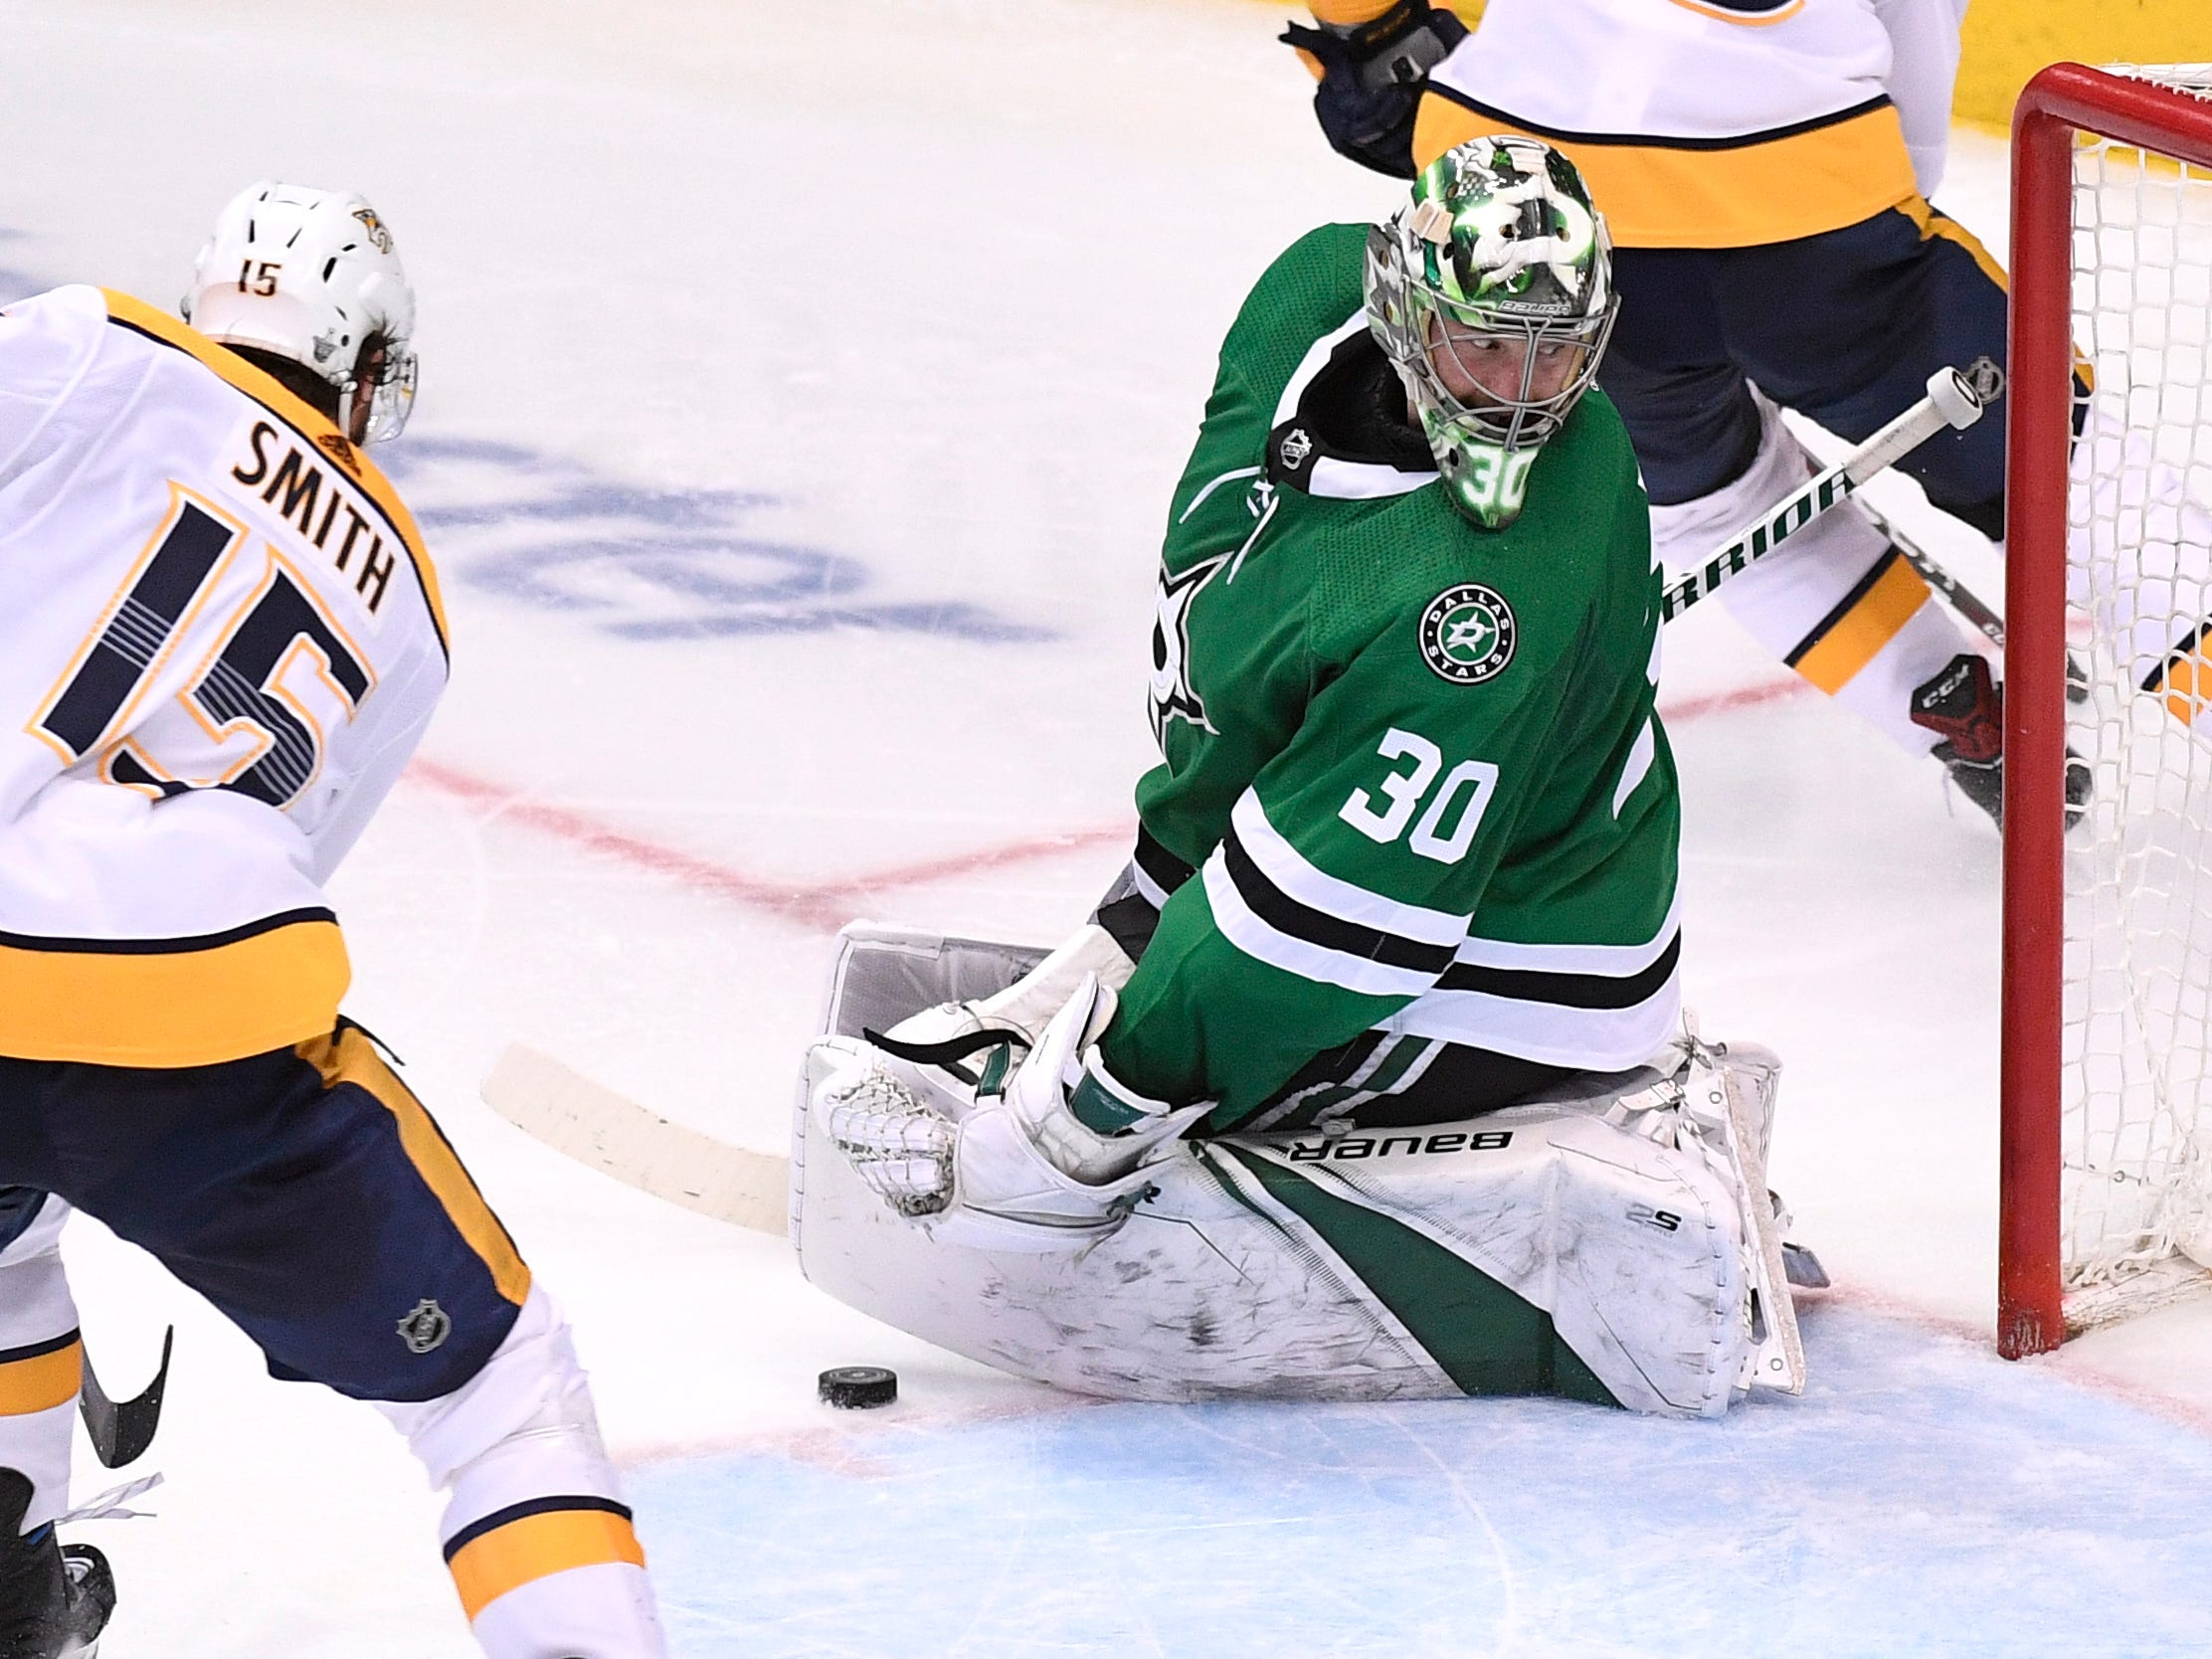 Dallas Stars goaltender Ben Bishop (30) defends the nets against Nashville Predators right wing Craig Smith (15) during the third period of the divisional semifinal game at the American Airlines Center in Dallas, Texas, Monday, April 22, 2019.